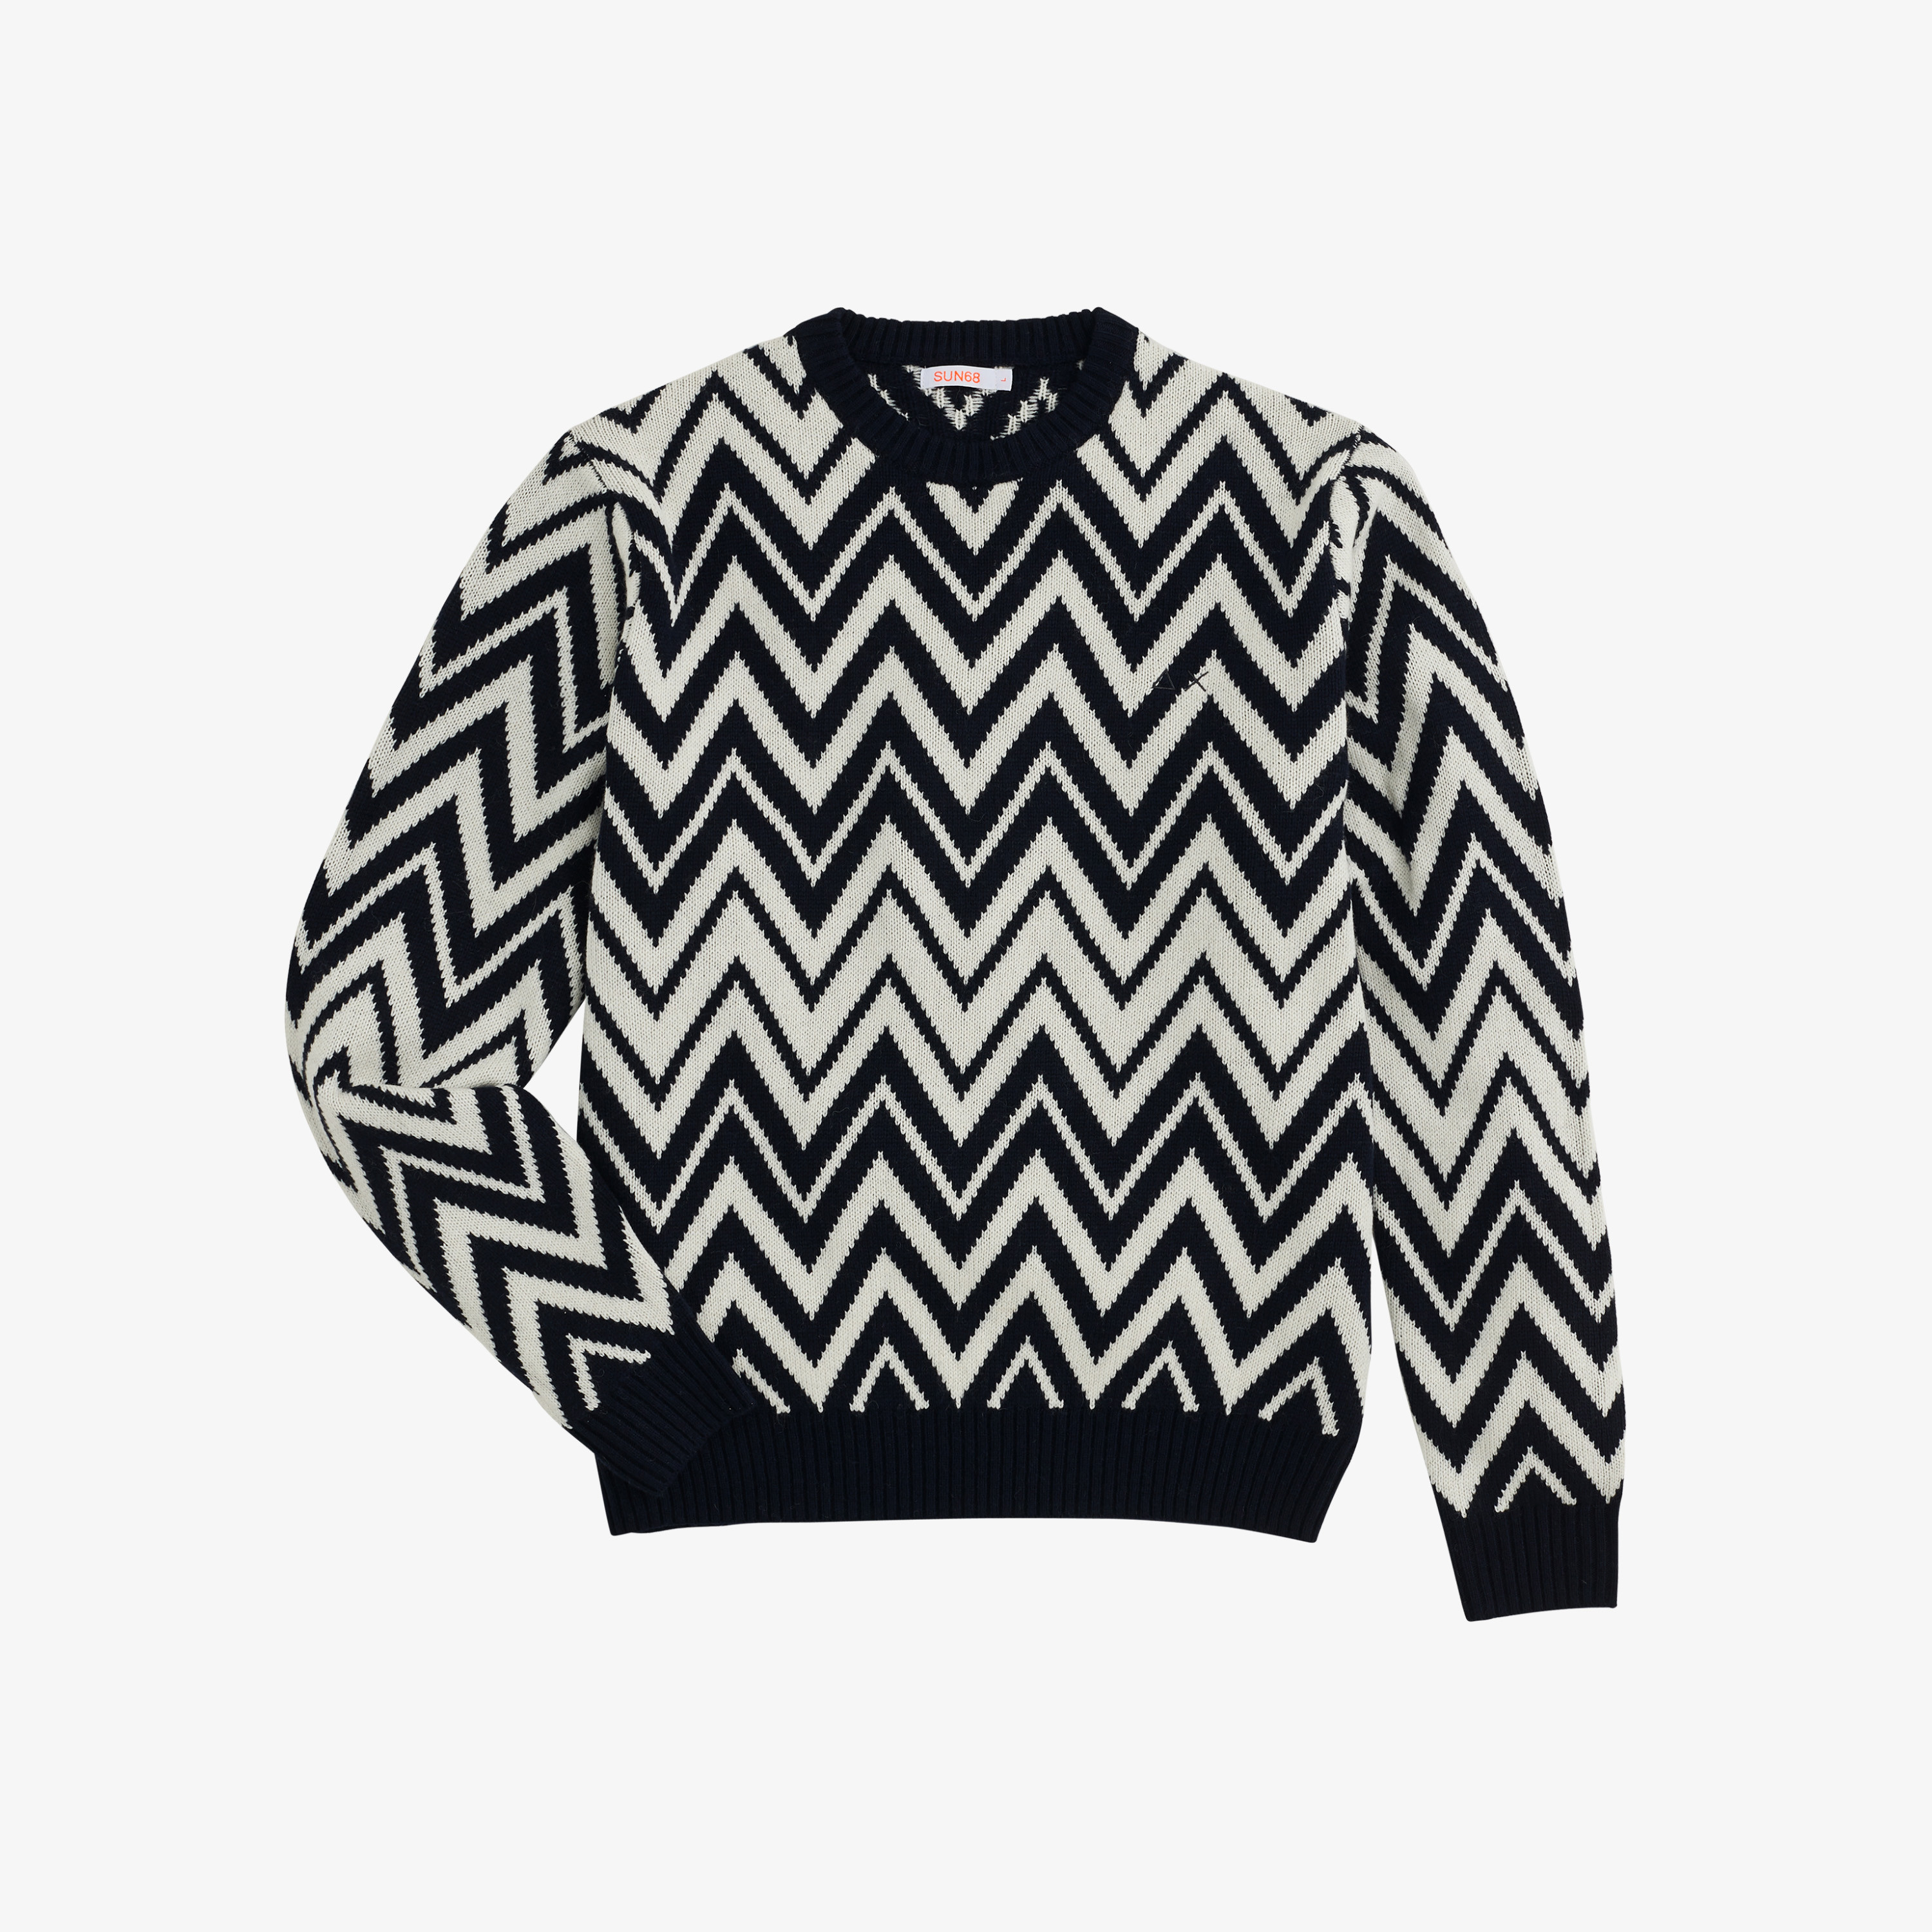 ROUND STRIPES NAVY BLUE/OFF WHITE